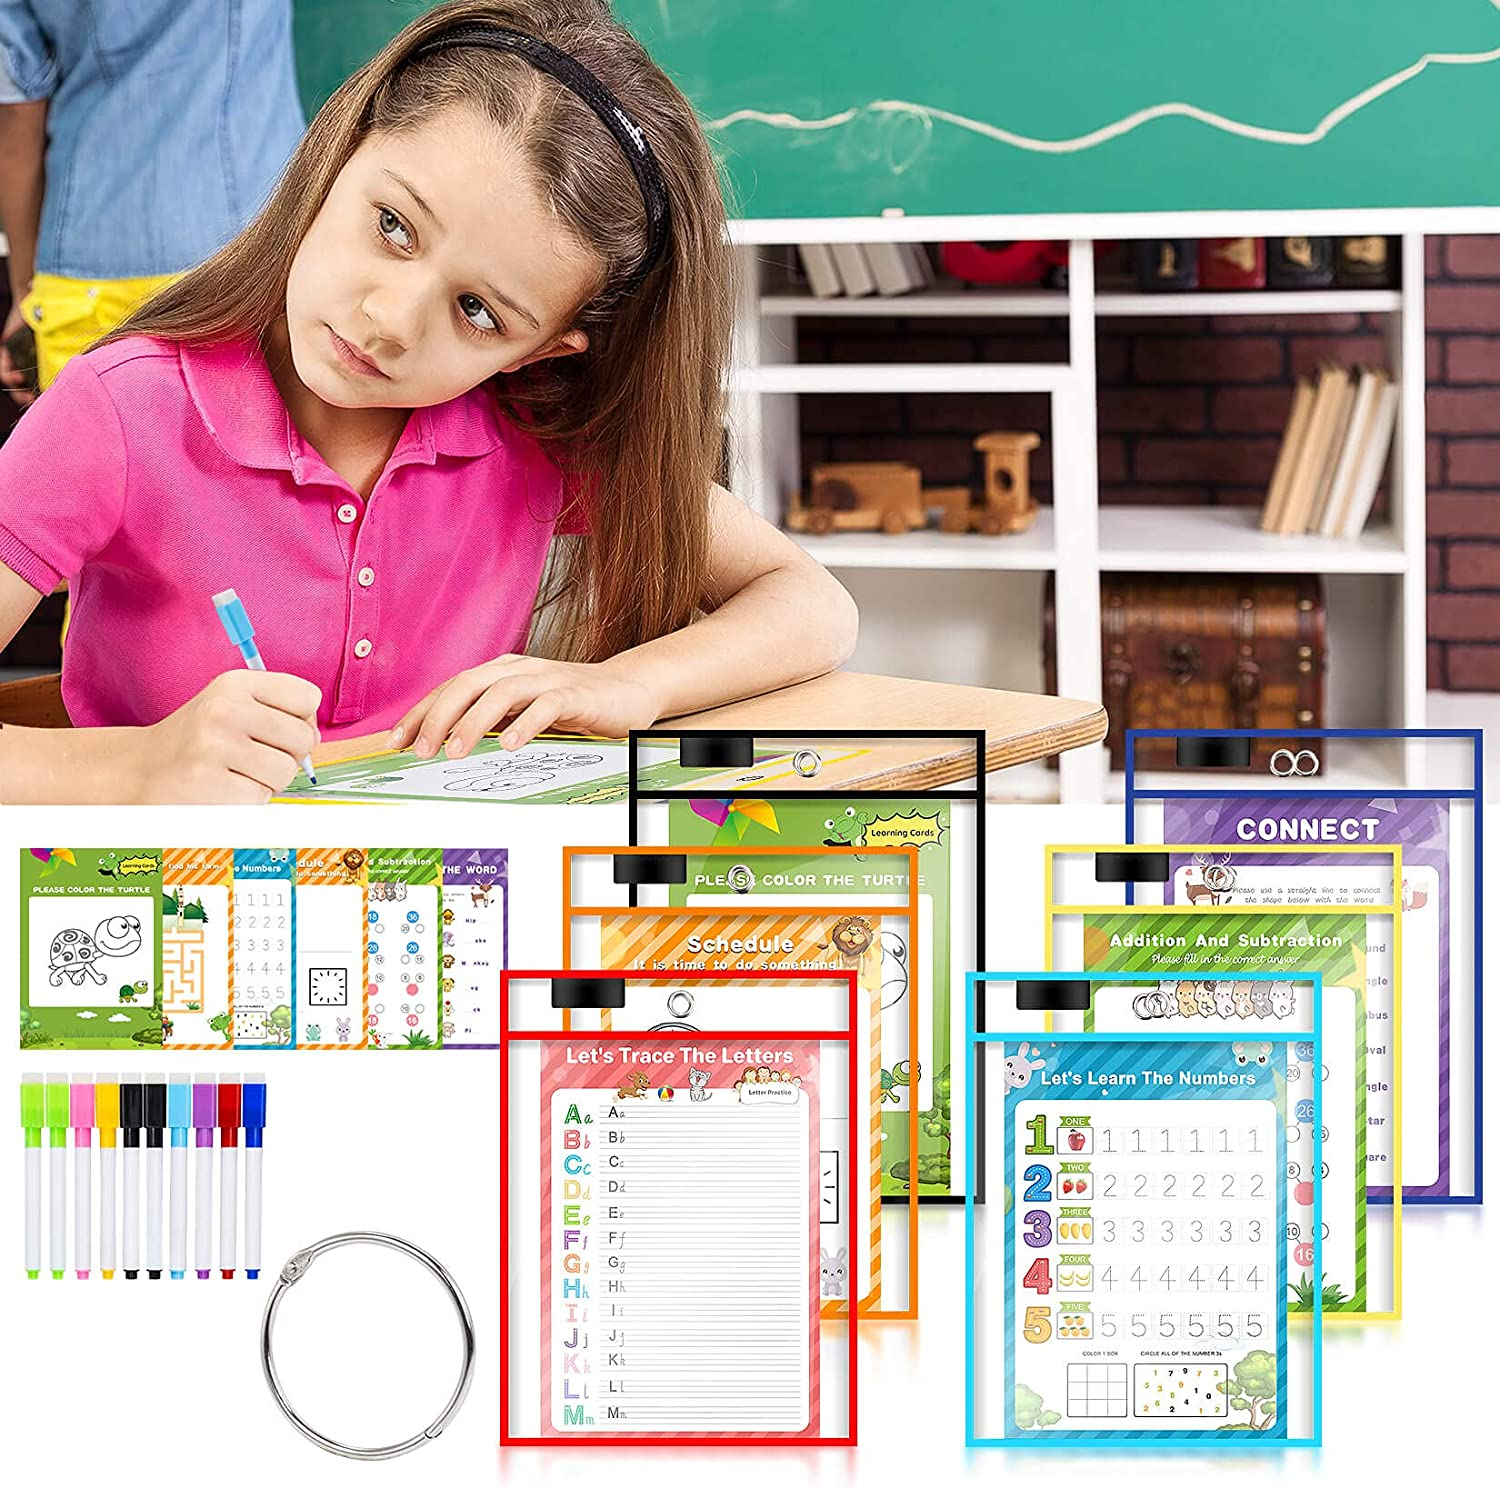 6 Pack Dry Erase Pockets, Dry Erase Sleeves Kids Ages 4-8-12 Assorted Color Oversized 10X14 inch Paper Great for Teachers, School, Home & Office. : Office Products